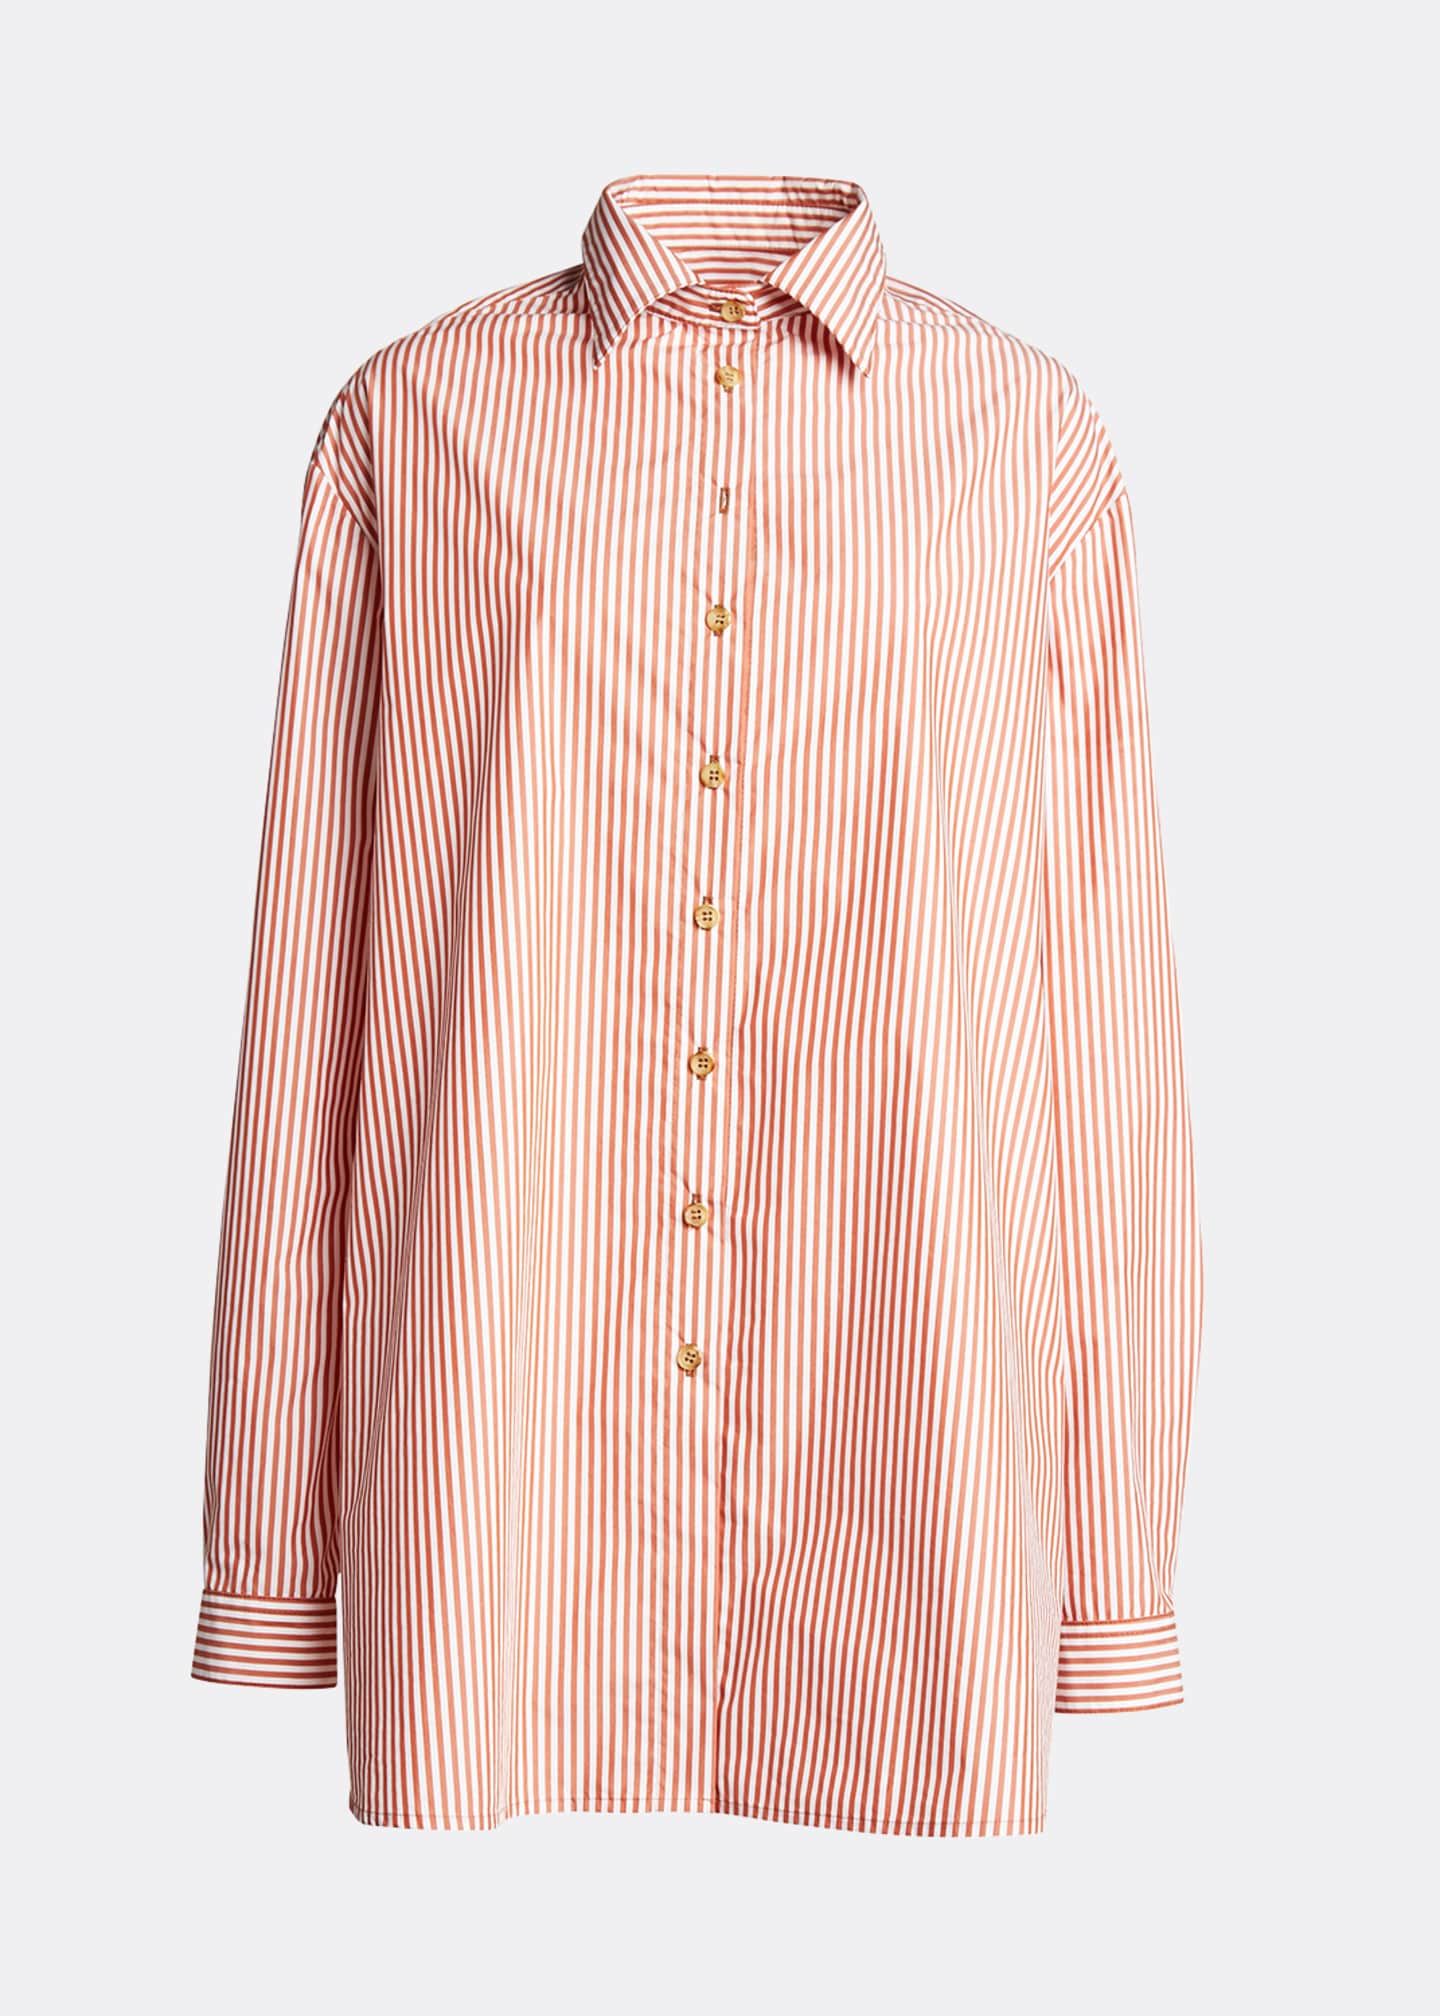 Image 5 of 5: Alfie Oversized Striped Button-Down Shirt